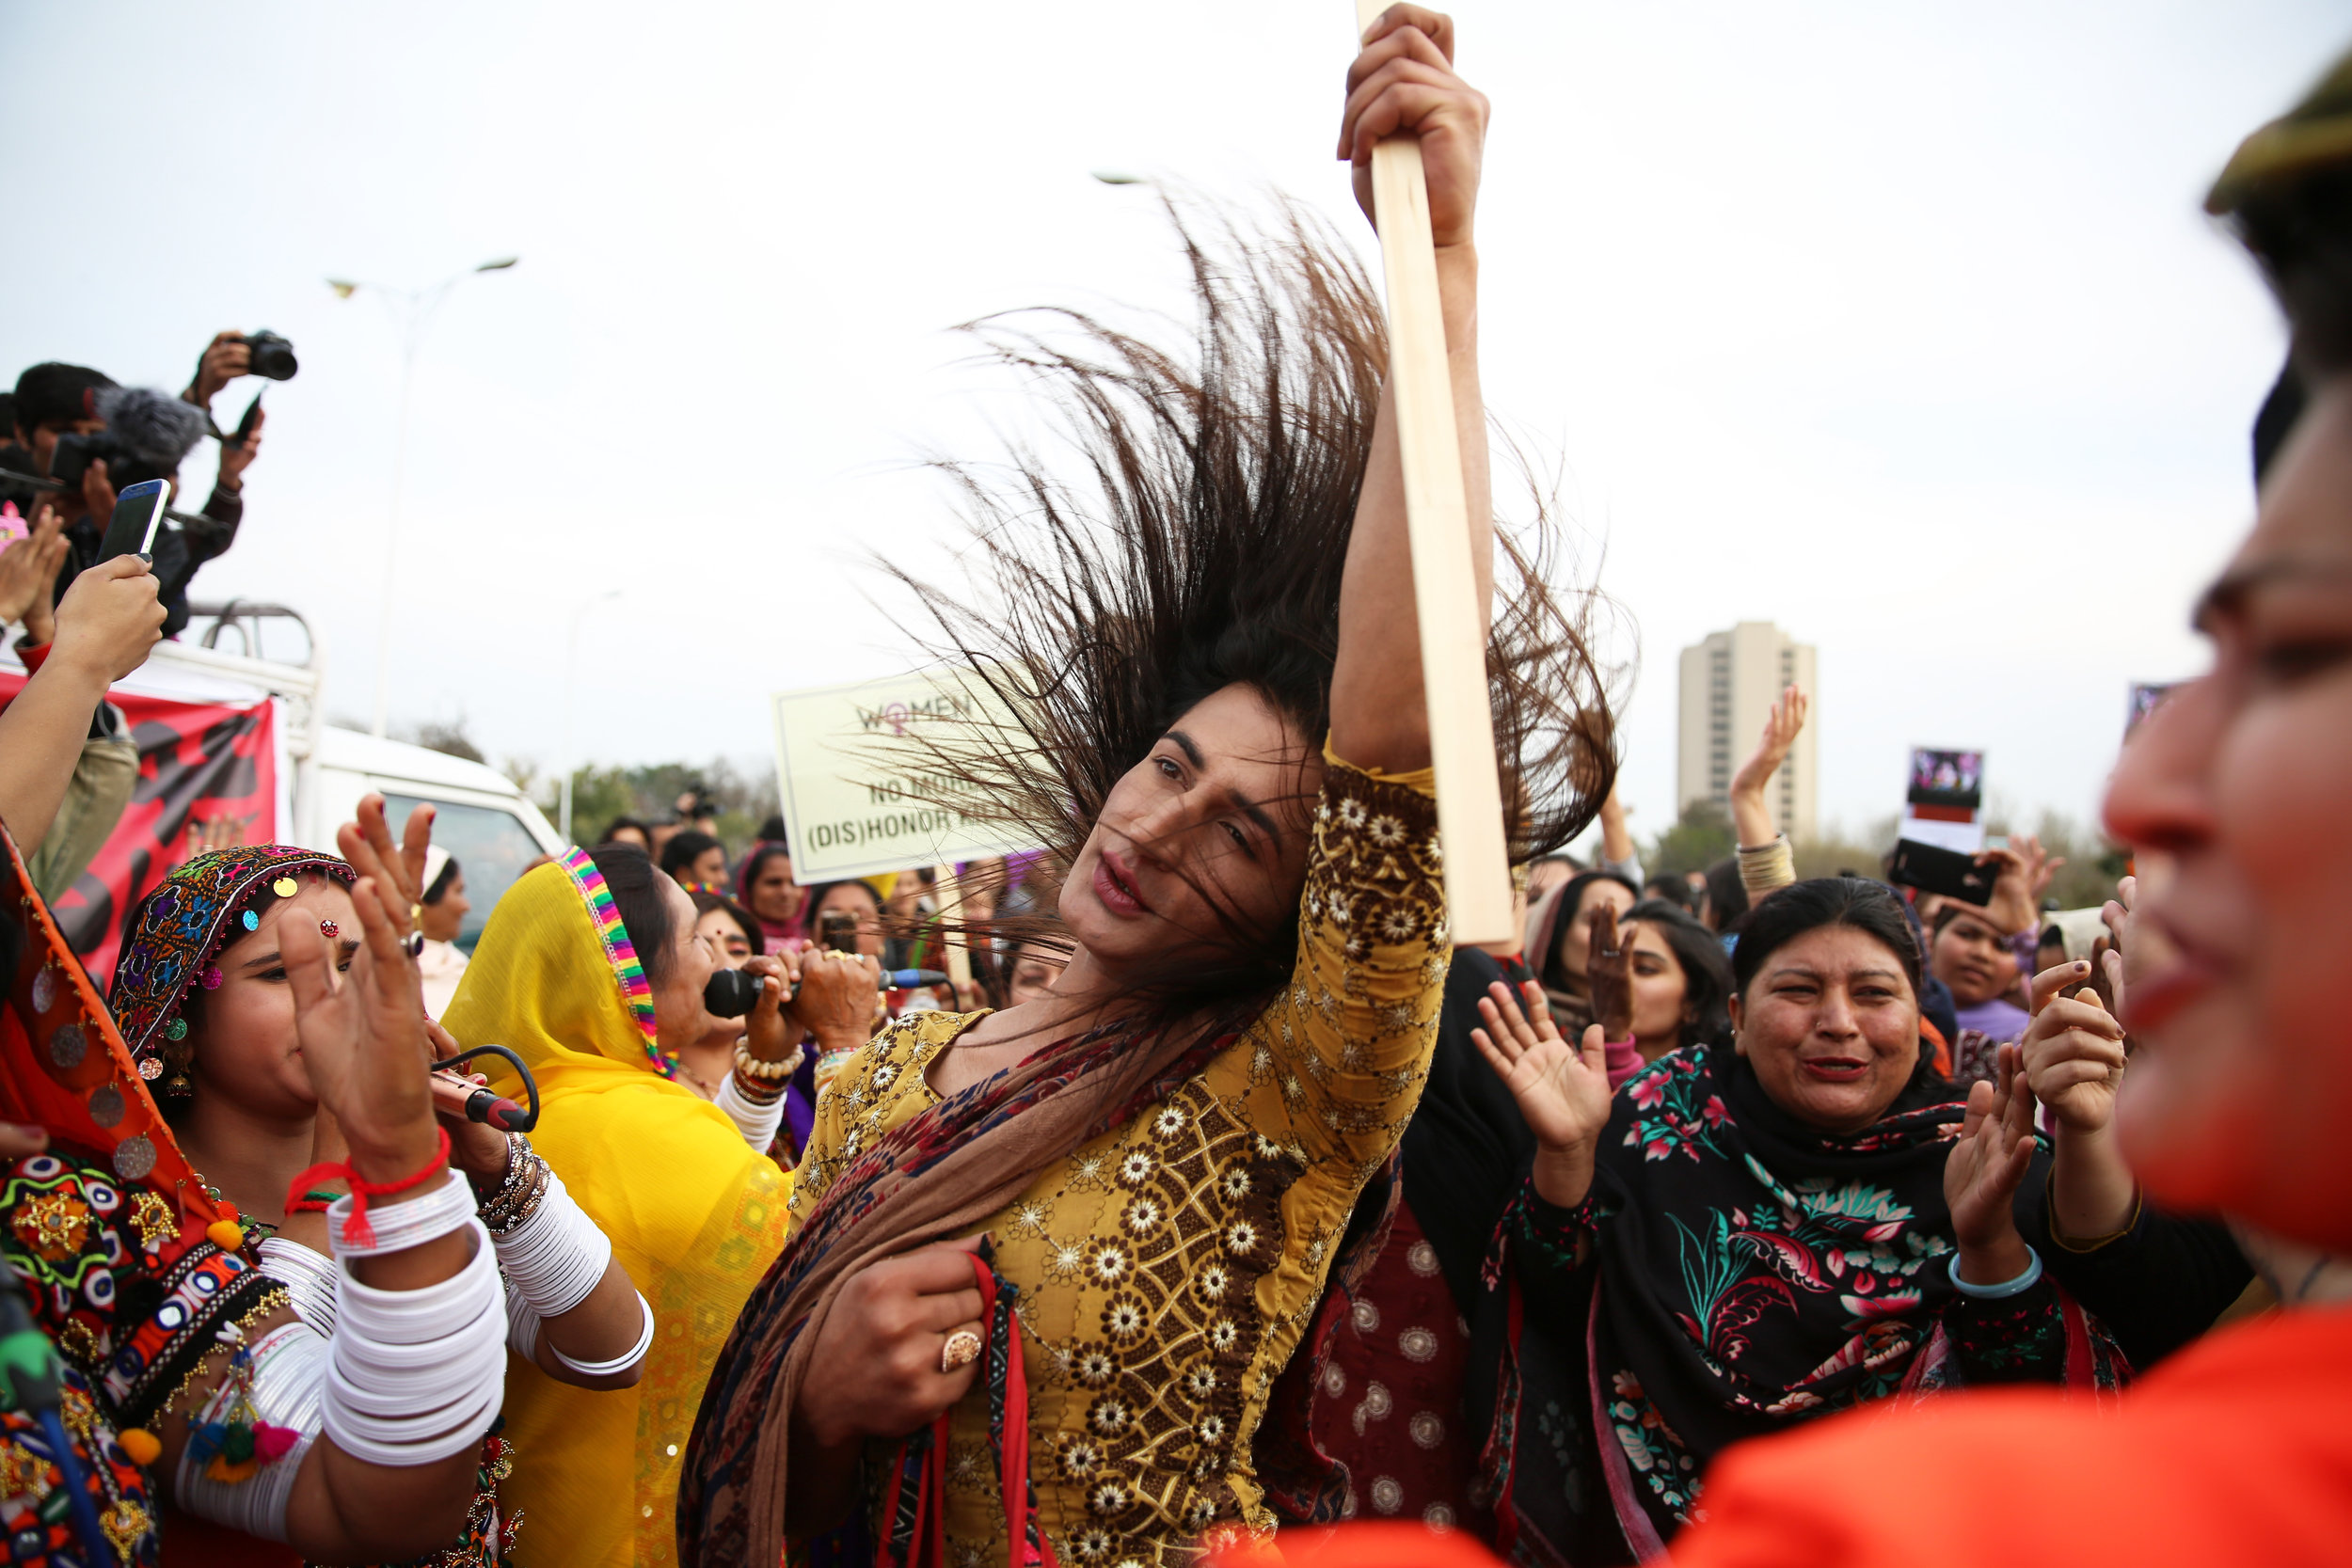 Julie Aman, a transgender dances to a folk band at the Aurat March event celebrating International Women's Day in Islamabad, Pakistan, March 8, 2019.